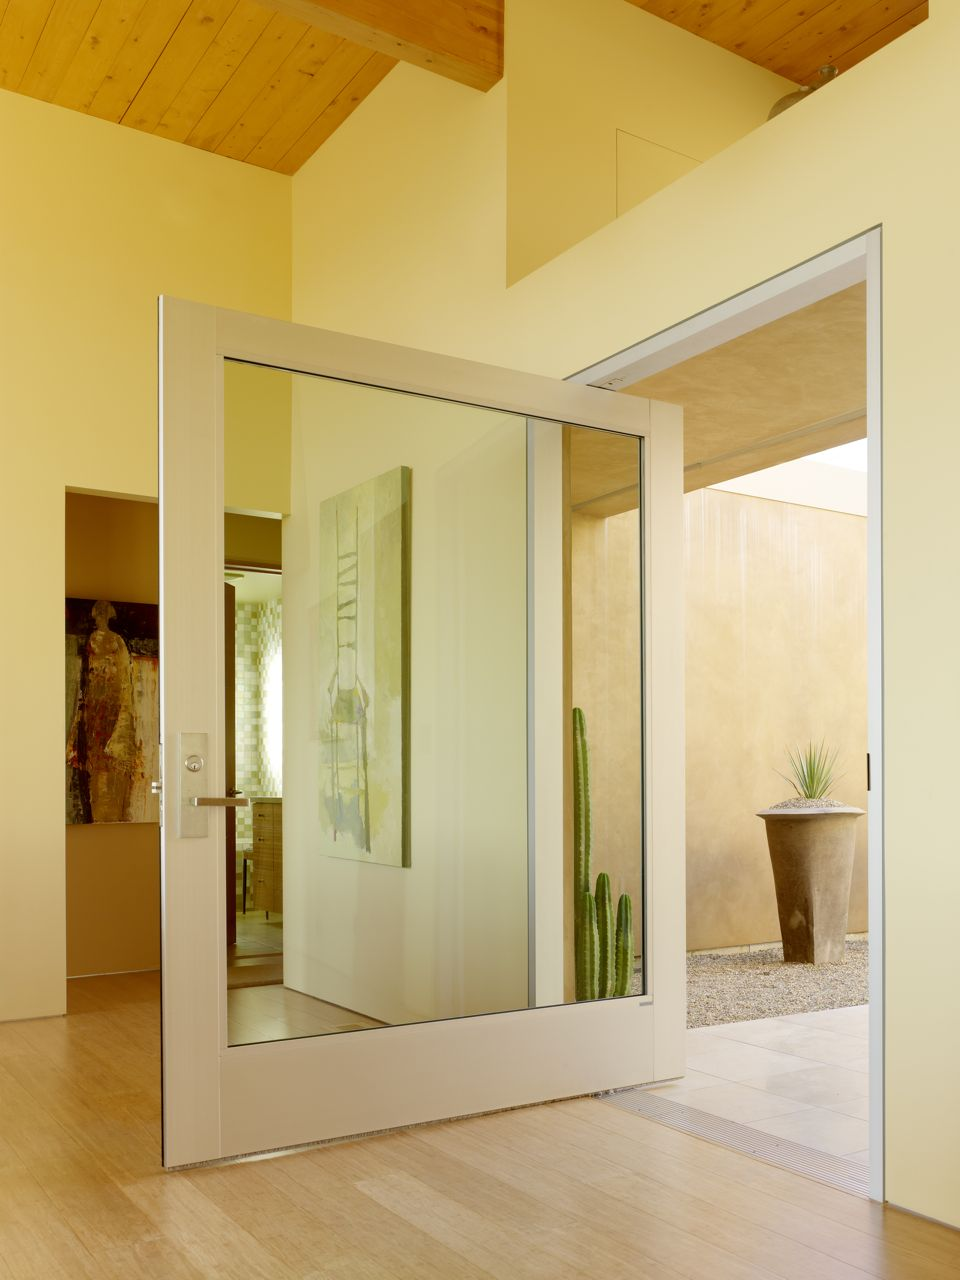 Posts and reflections on pivot doors Pivot entrance doors